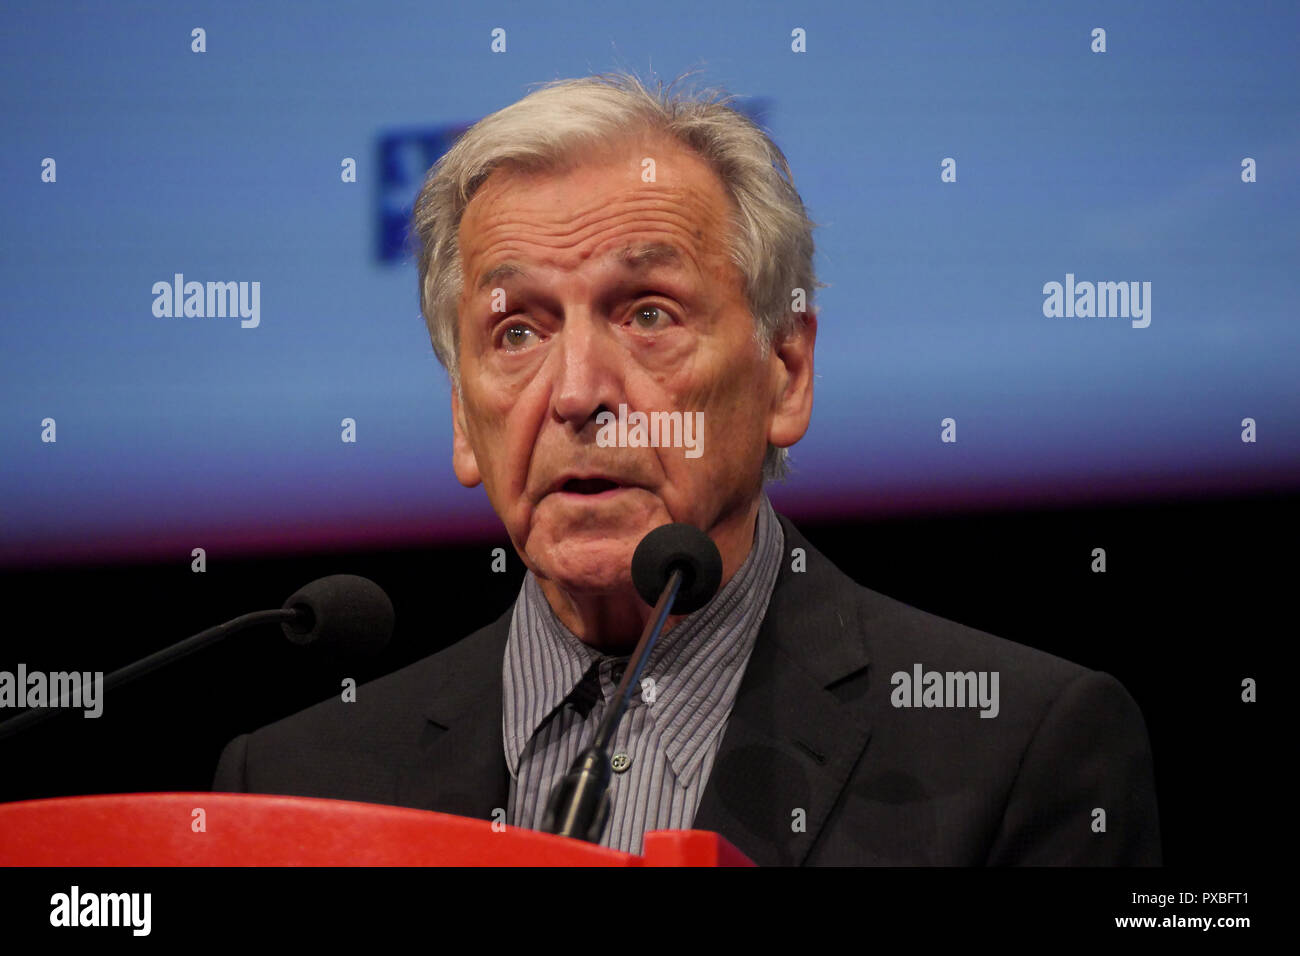 Greek-French film maker Costa Gavras delivers speech during a 10th Lumiere Film Festival, Lyon, France - Stock Image